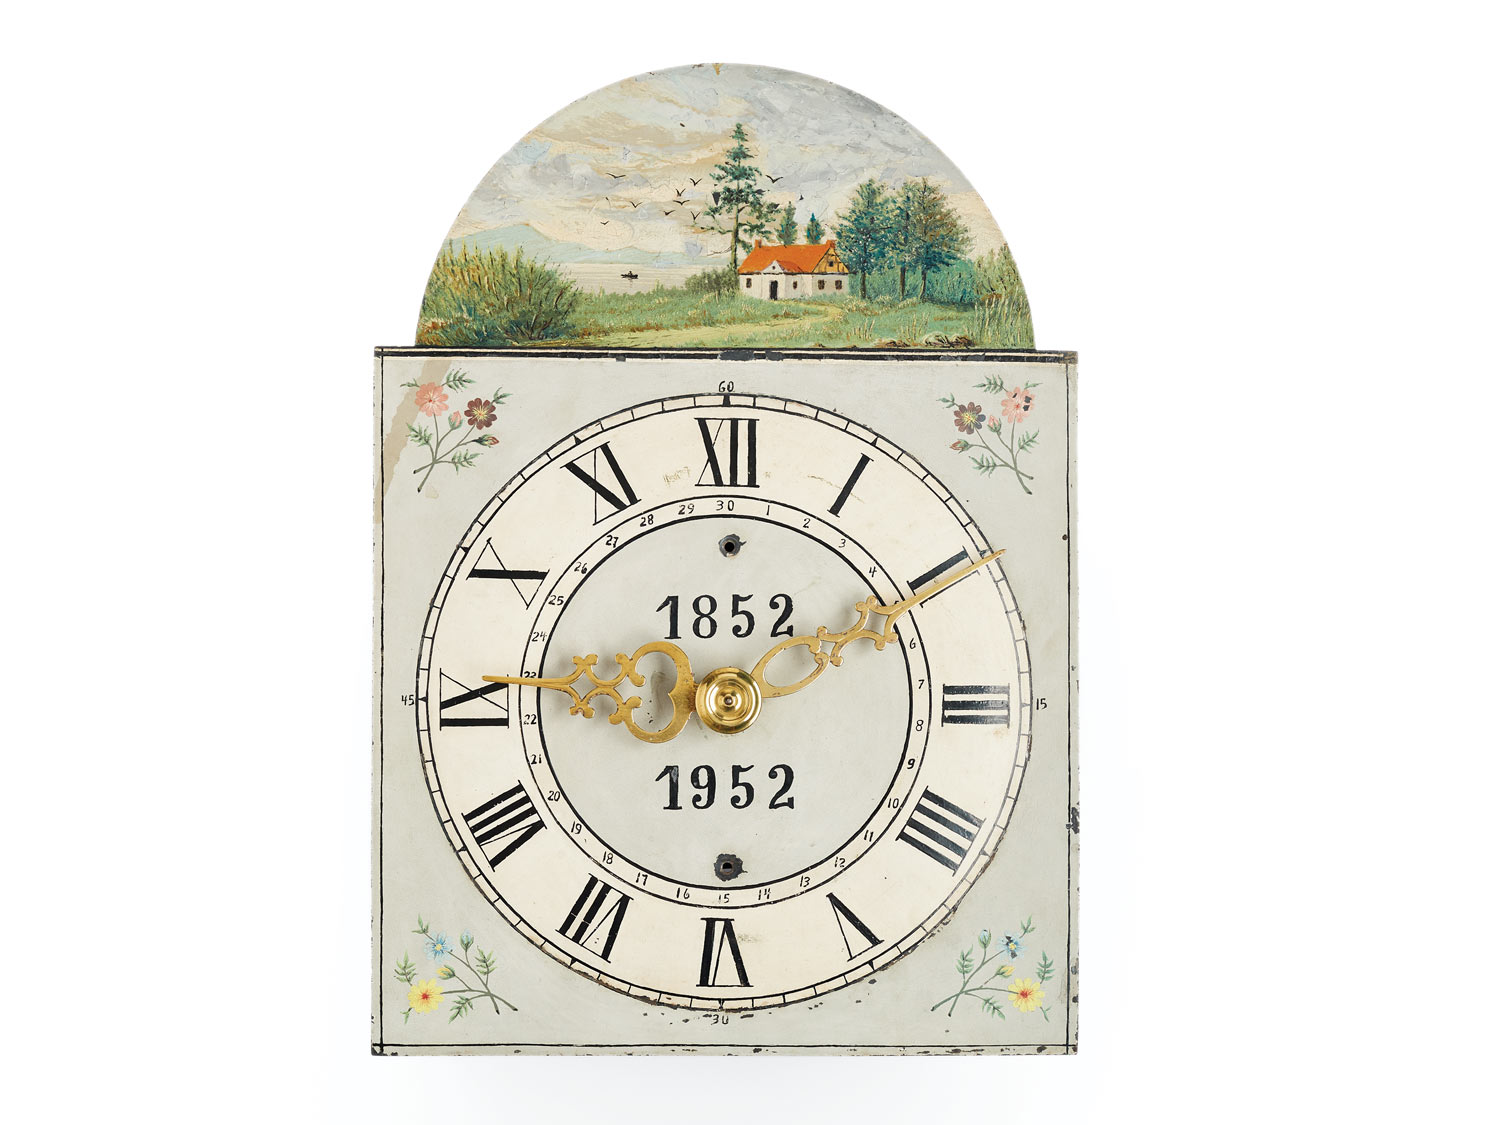 kroeger-clock-mc0258-3.jpg